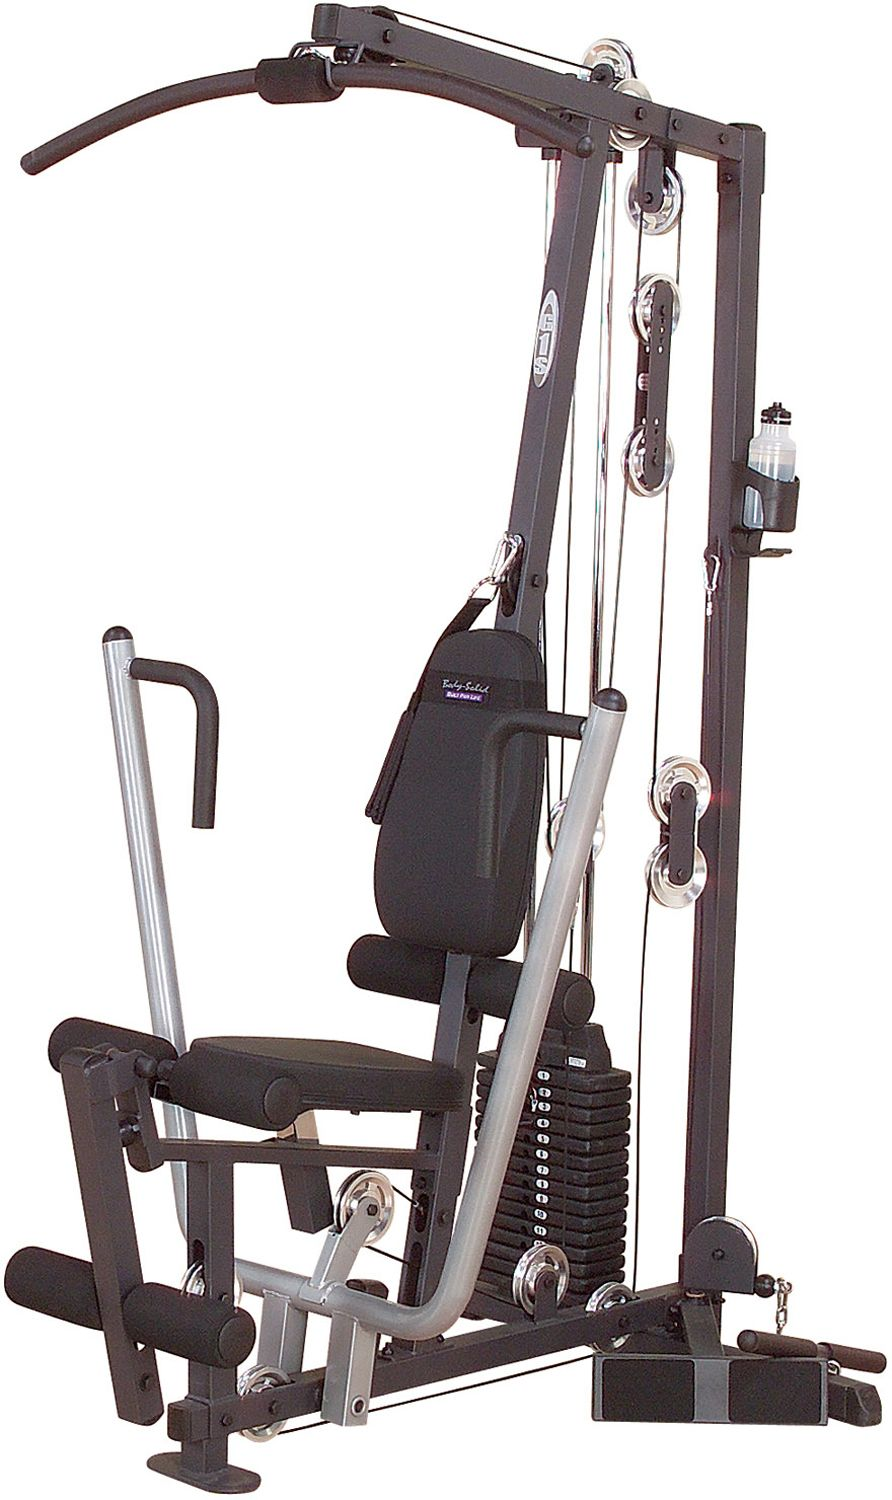 Body solid g s compact home gym dick s sporting goods